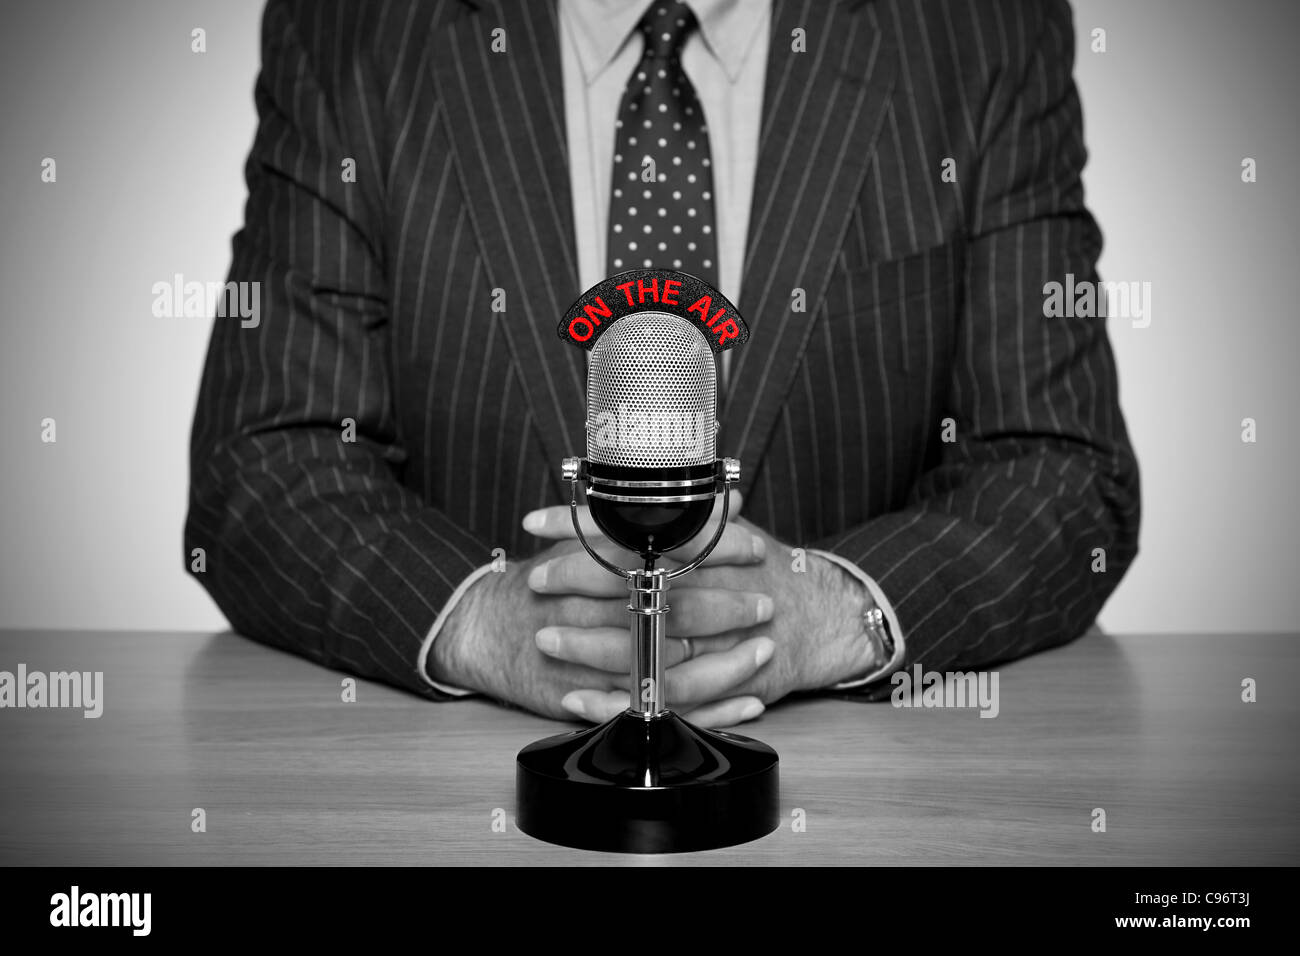 Photo of a news broadcaster sat at a desk and retro microphone with an On The Air illuminated sign - Stock Image